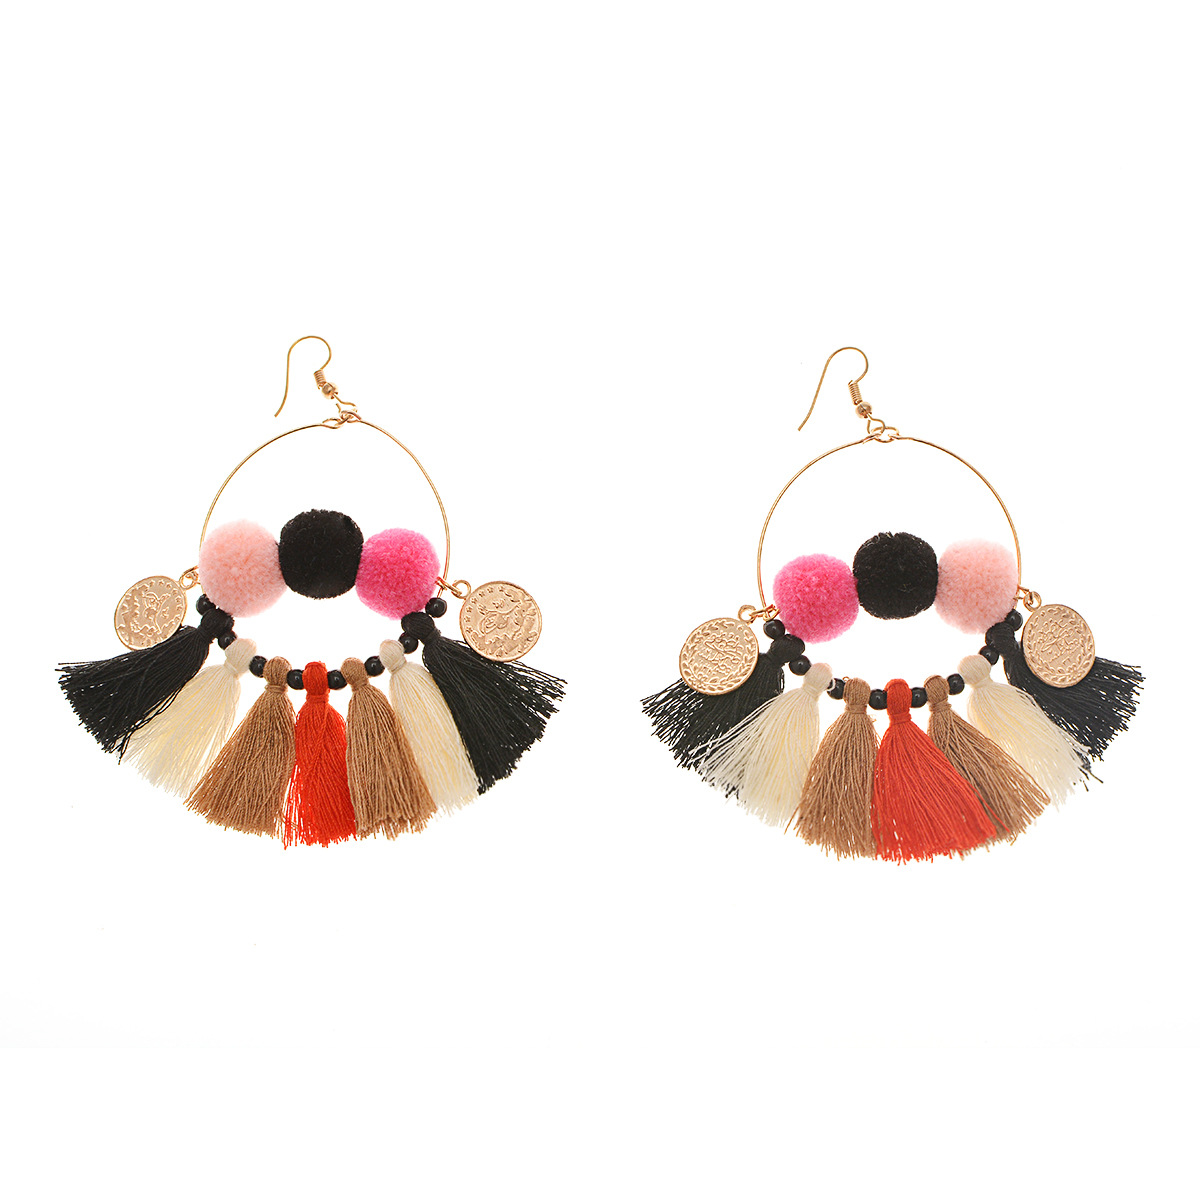 folk-custom alloy plating earring (B0844 color mixing)NHXR1487-B0844 color mixing